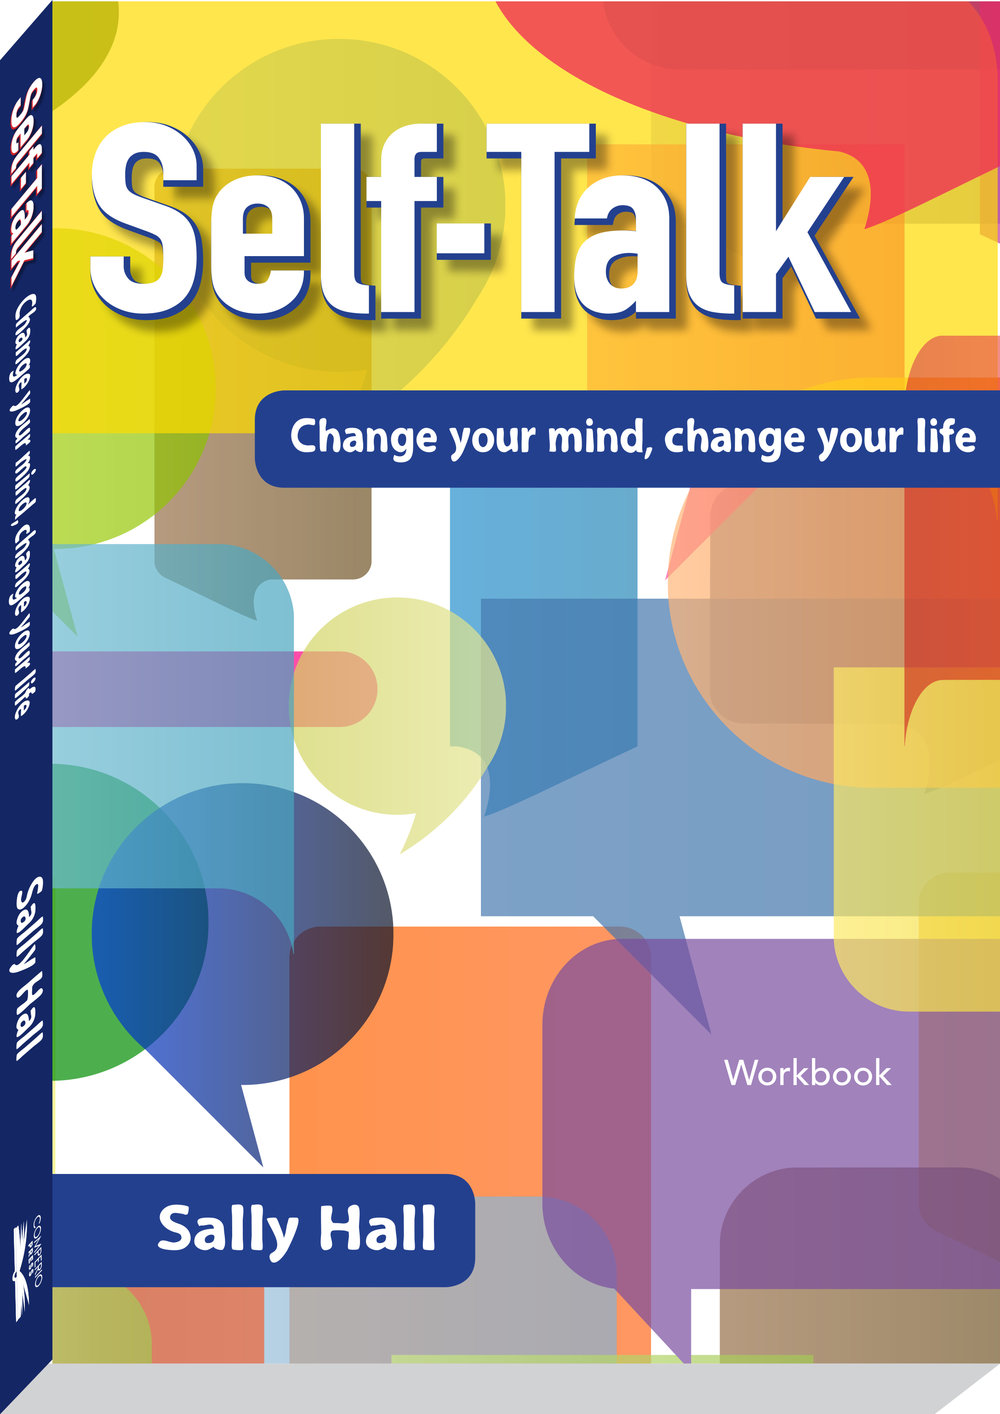 Self_Talk_book_cover_3D.jpg